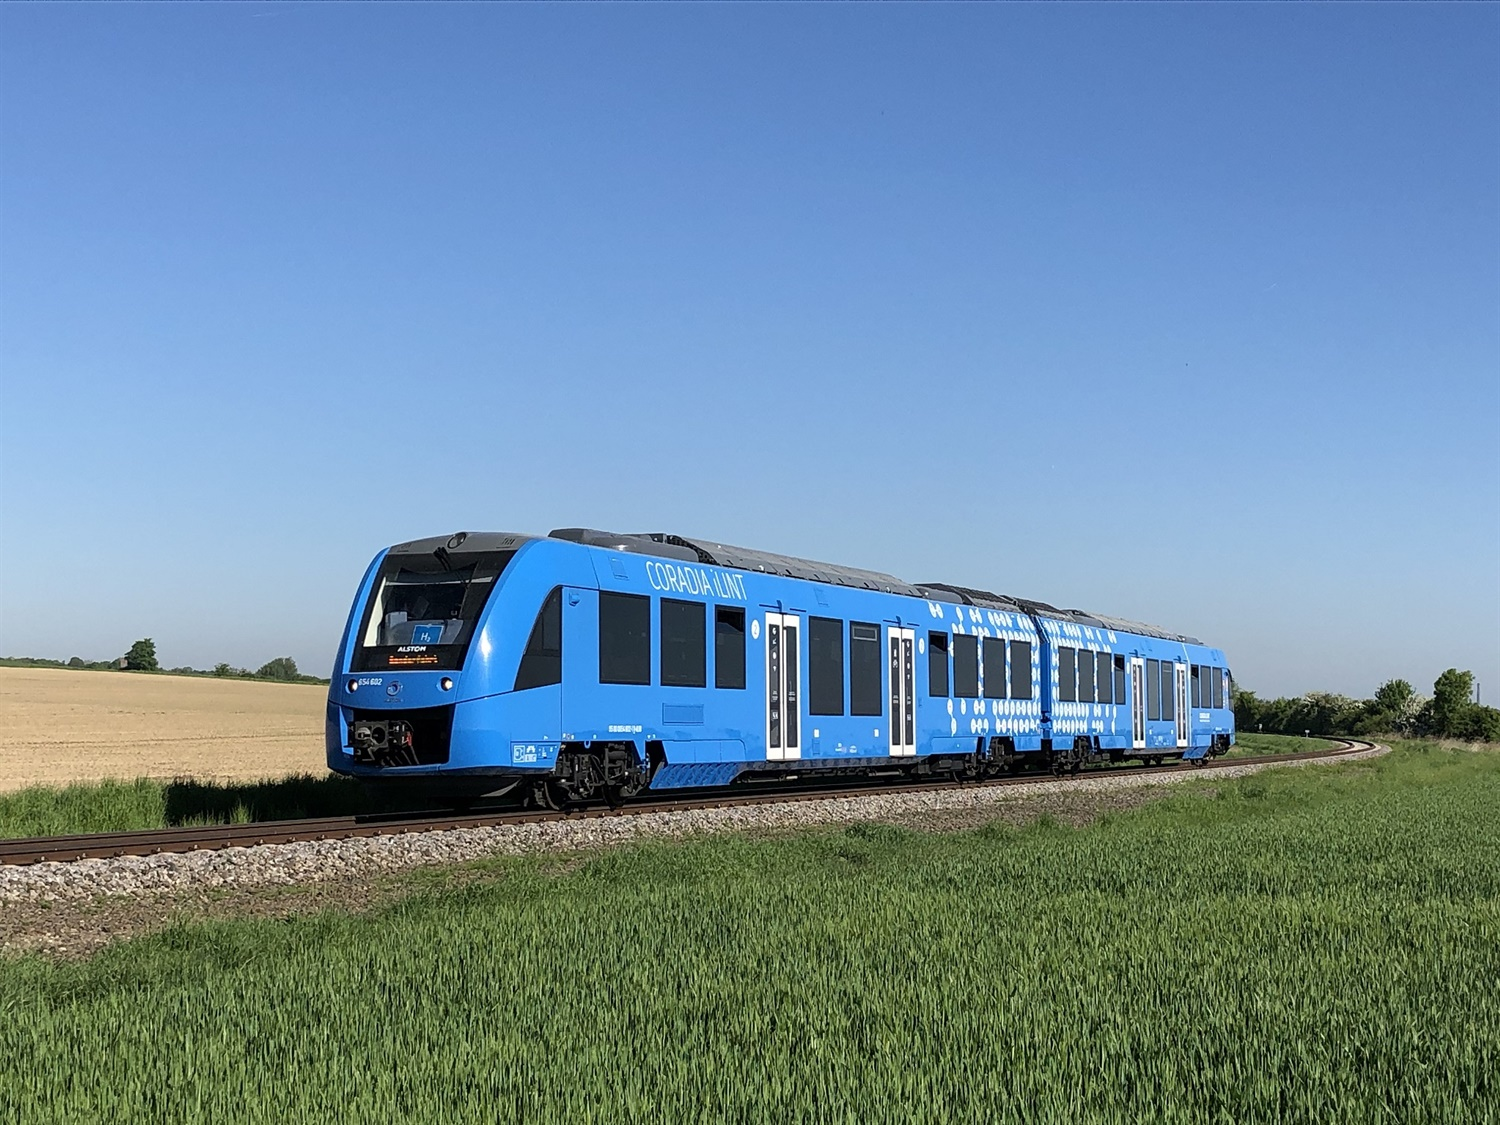 Alstom's world first hydrogen train completes tests in the Netherlands